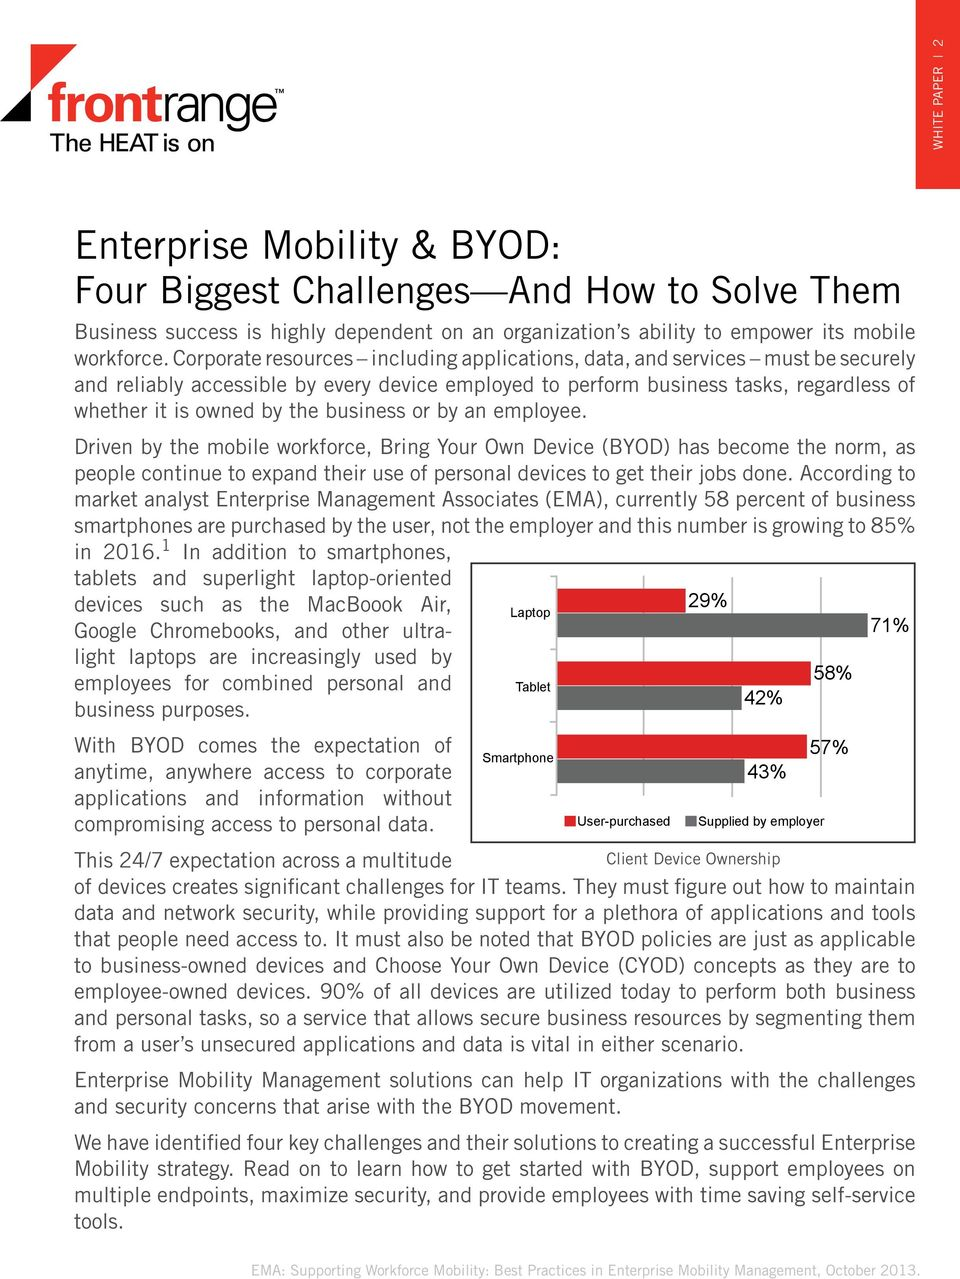 business or by an employee. Driven by the mobile workforce, Bring Your Own Device (BYOD) has become the norm, as people continue to expand their use of personal devices to get their jobs done.